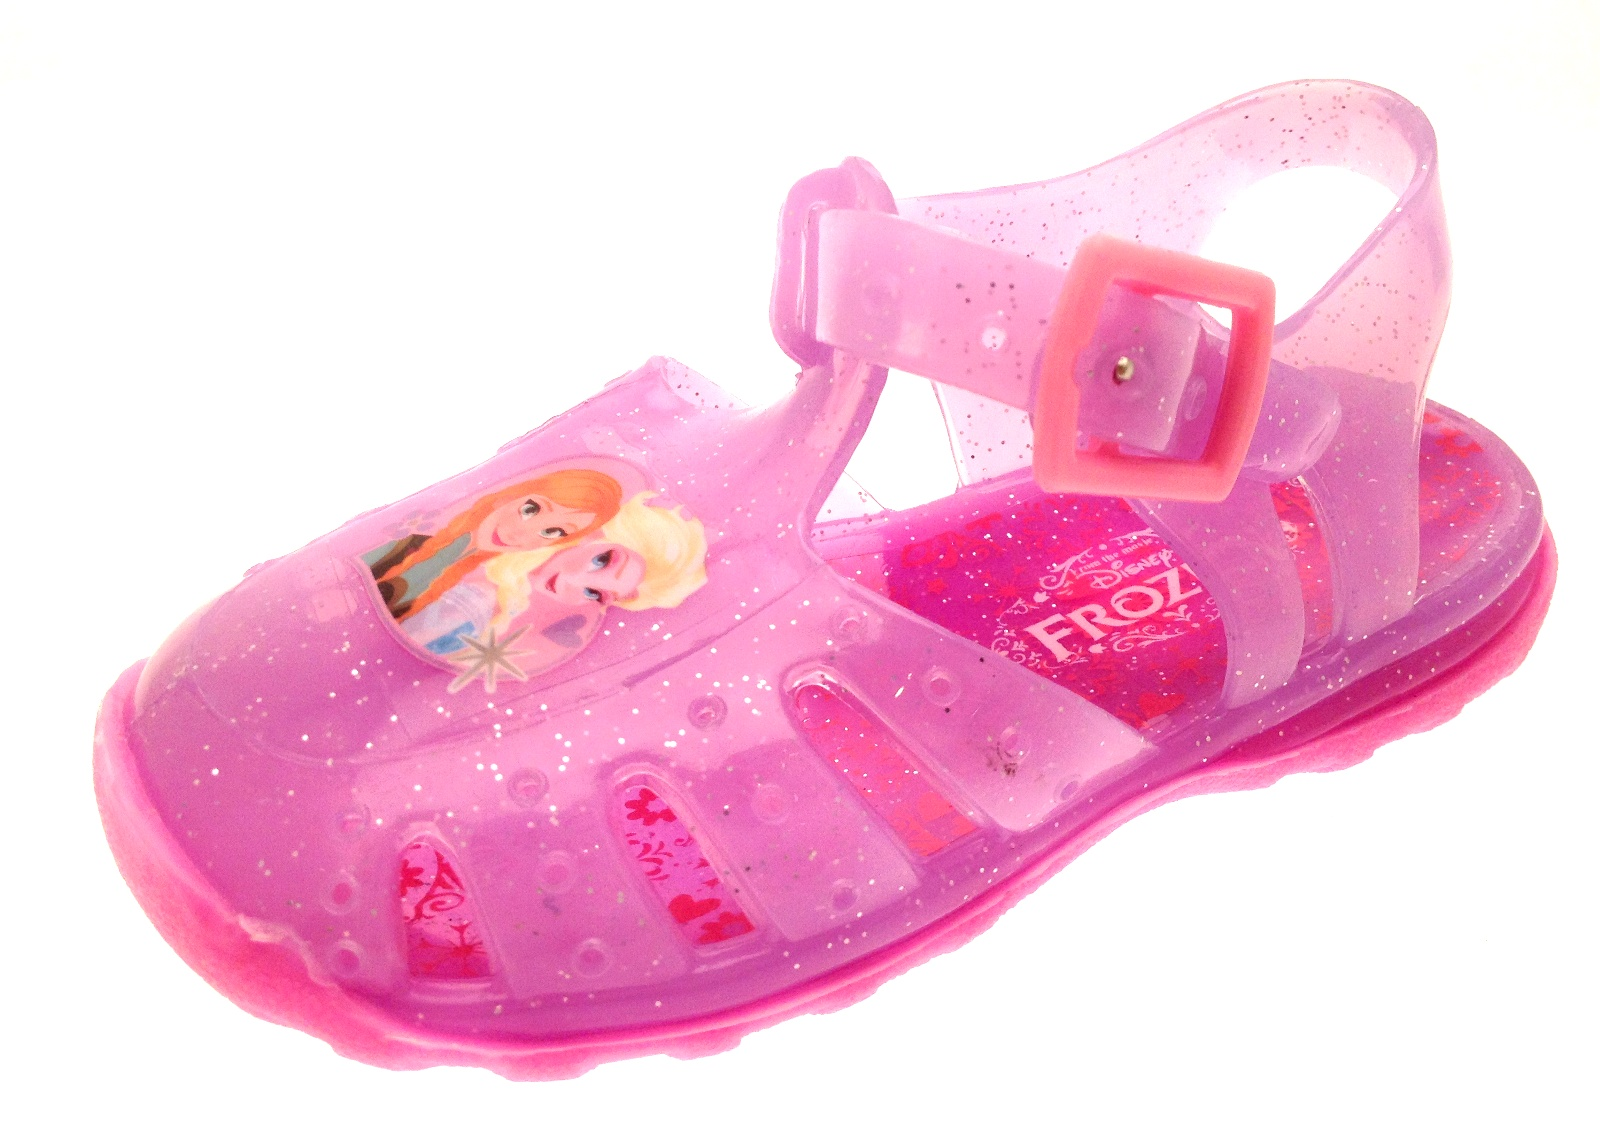 74aeb154fe6 Girls Pink Frozen Elsa Jelly Shoes Beach Glitter Sandals Jellies Kids Size  3 - 9